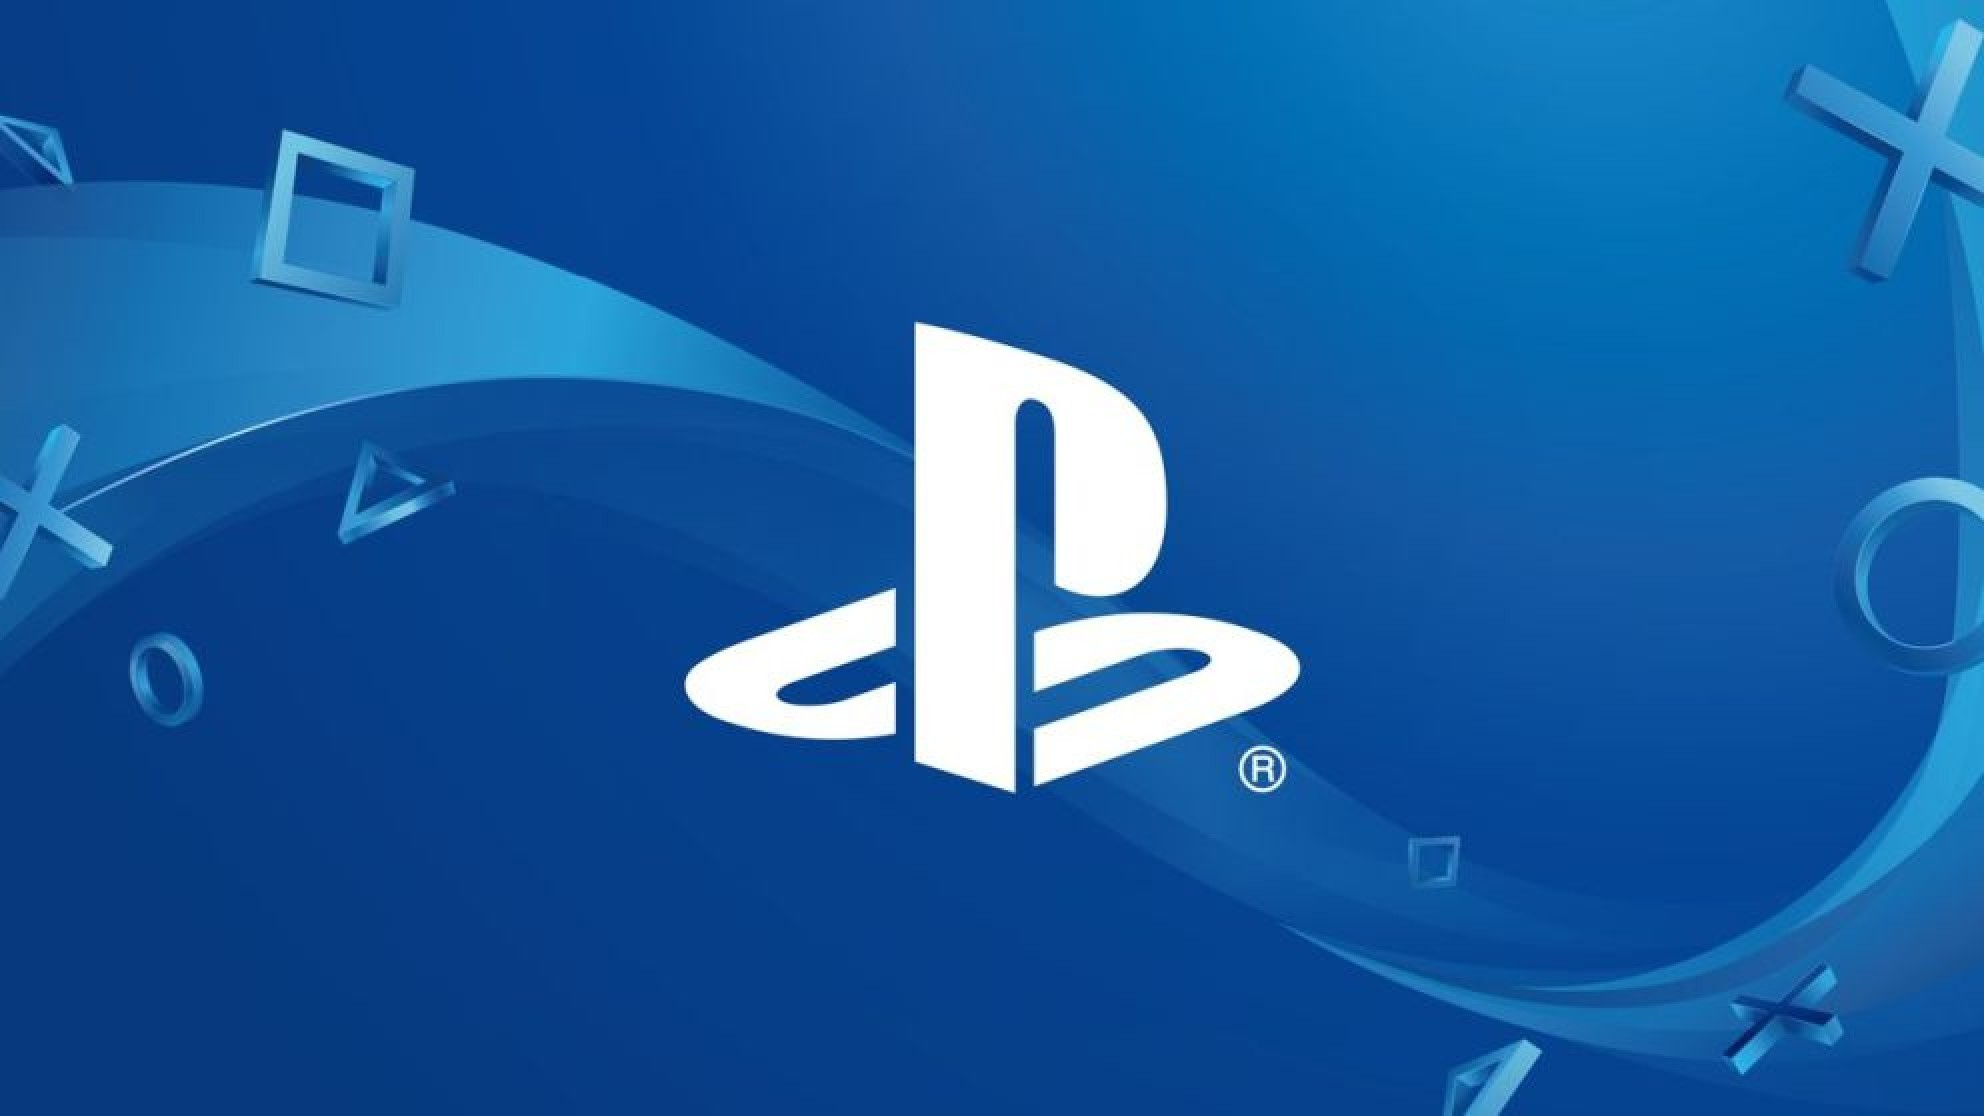 PS4 users will be able to change their nickname